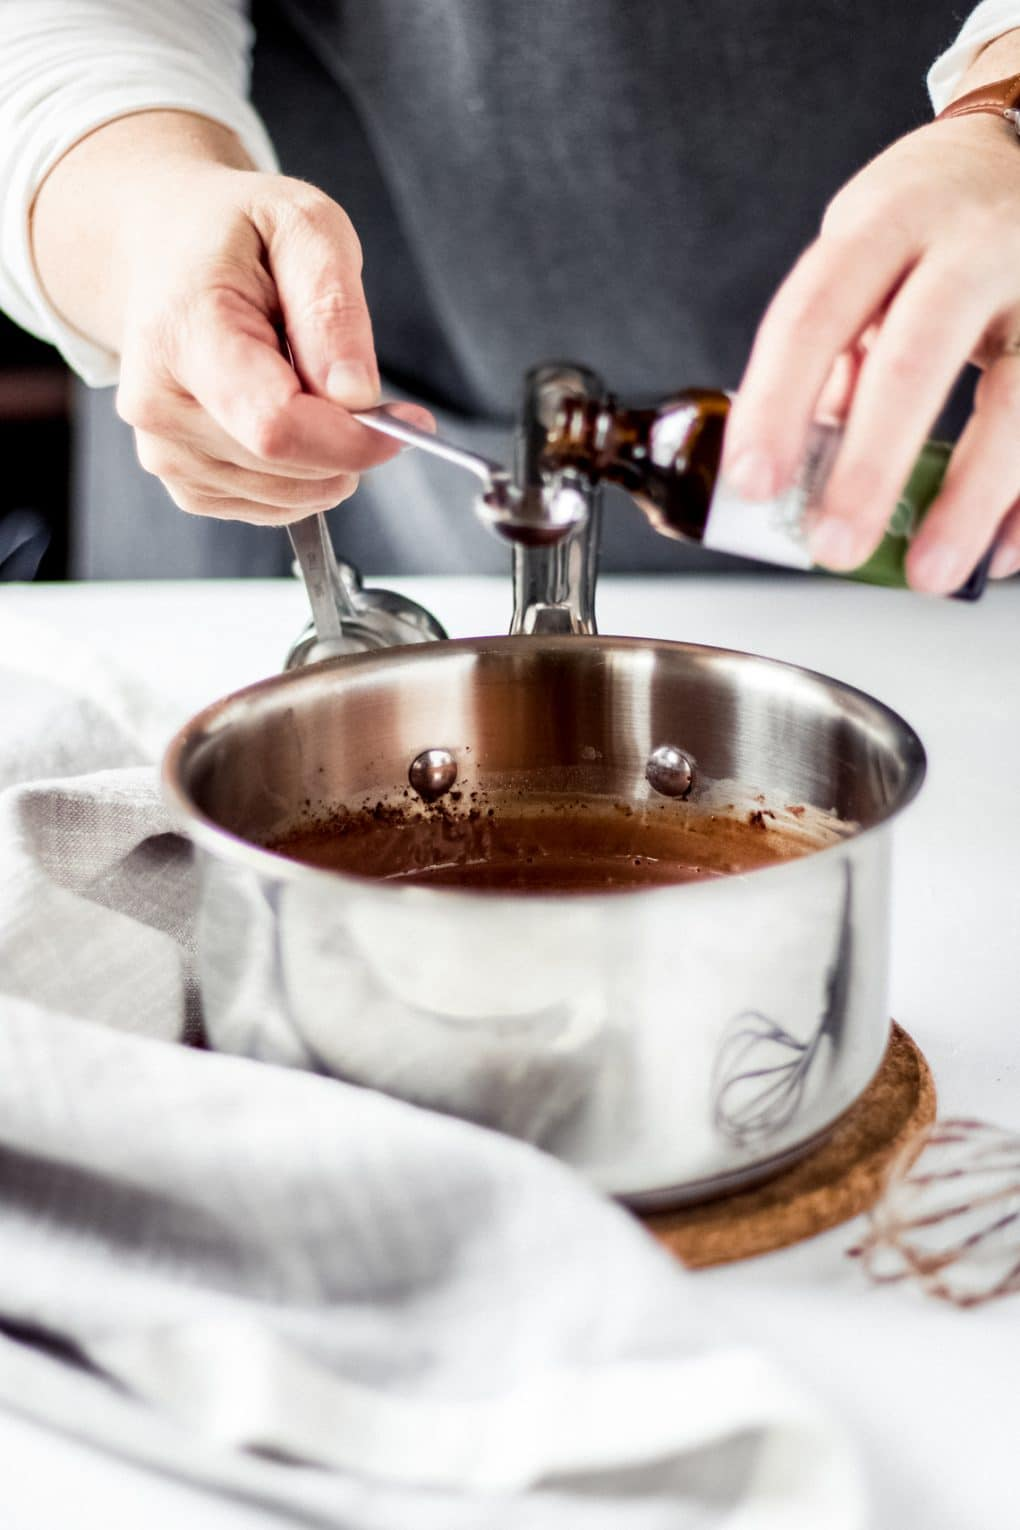 a woman adding peppermint extract to a saucepan